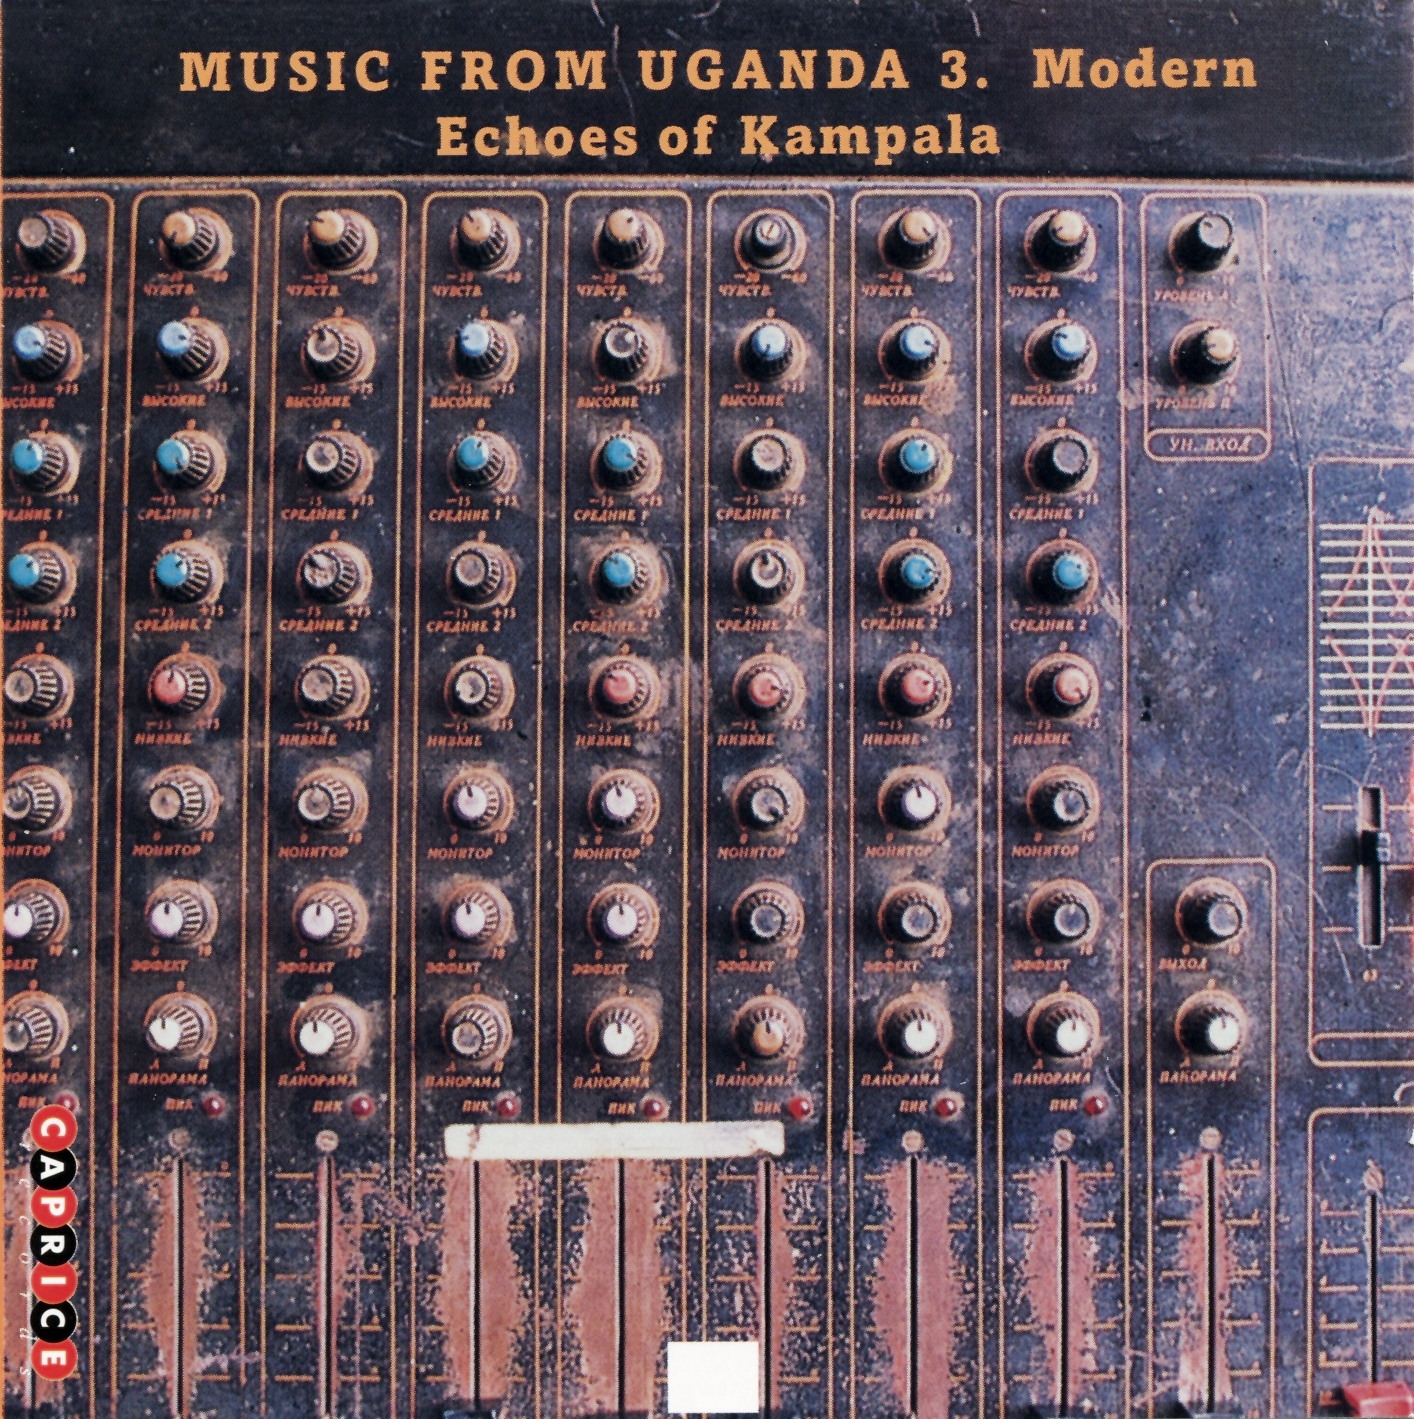 Music from Uganda 3: Echoes of Kampala